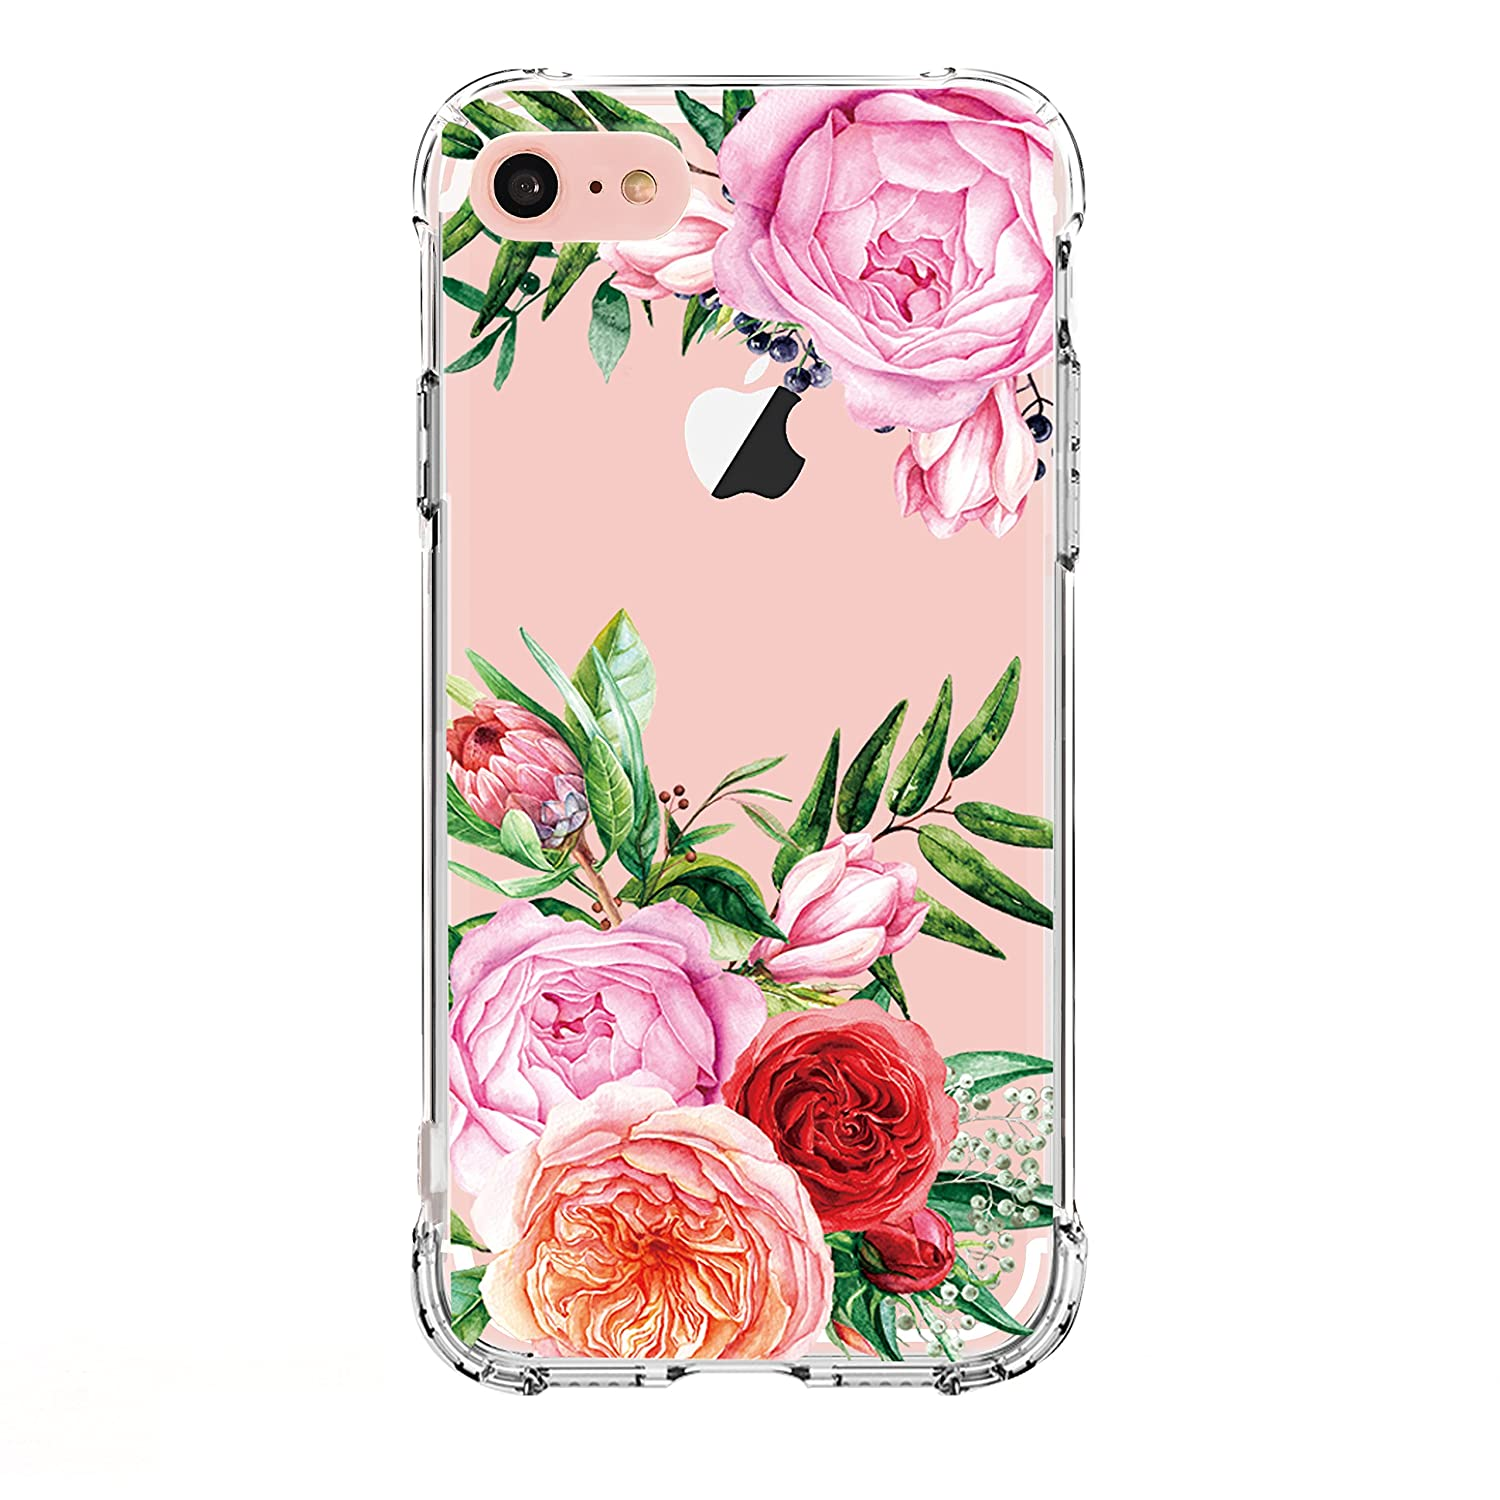 LUOLNH iPhone 6 6S Case, Slim Shockproof Clear Floral Pattern Soft Flexible TPU Back Cover [4.7 inch] - 4 Color Pineapple